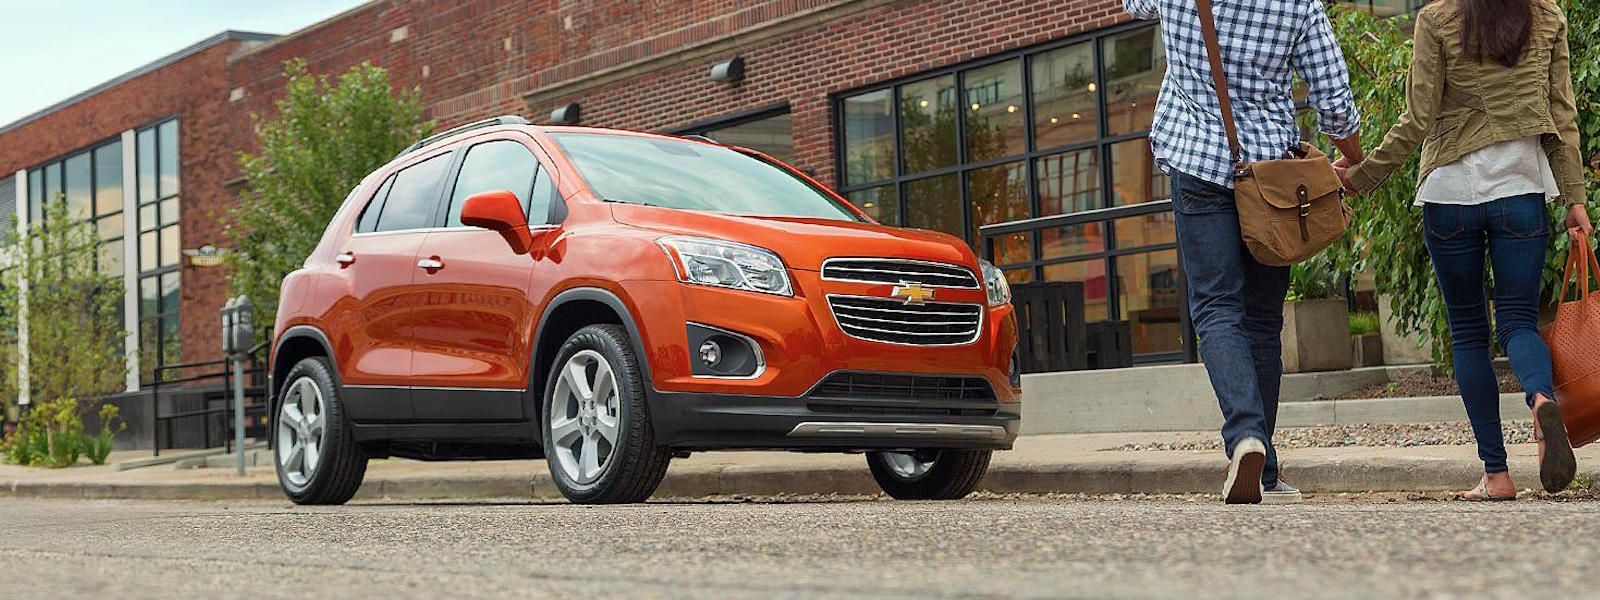 An orange 2016 Chevy Trax is parked in front of a brick building in Albany, NY.